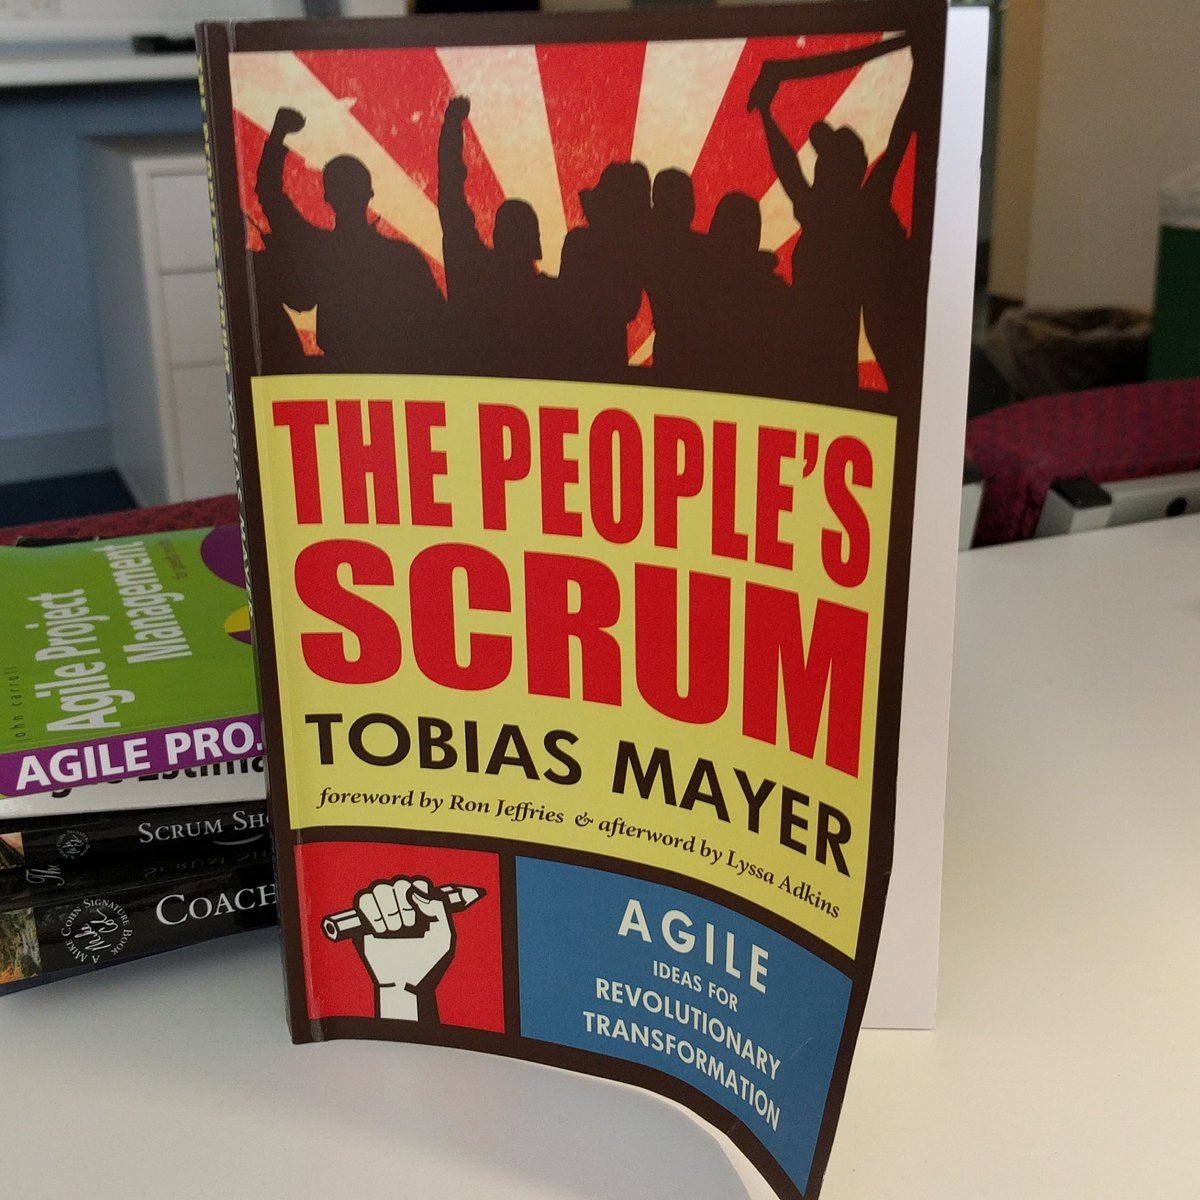 Loving this book by @tobiasmayer. So many great insights, every chapter has something to challenge you and inspire. https://t.co/QJmbeHlv24